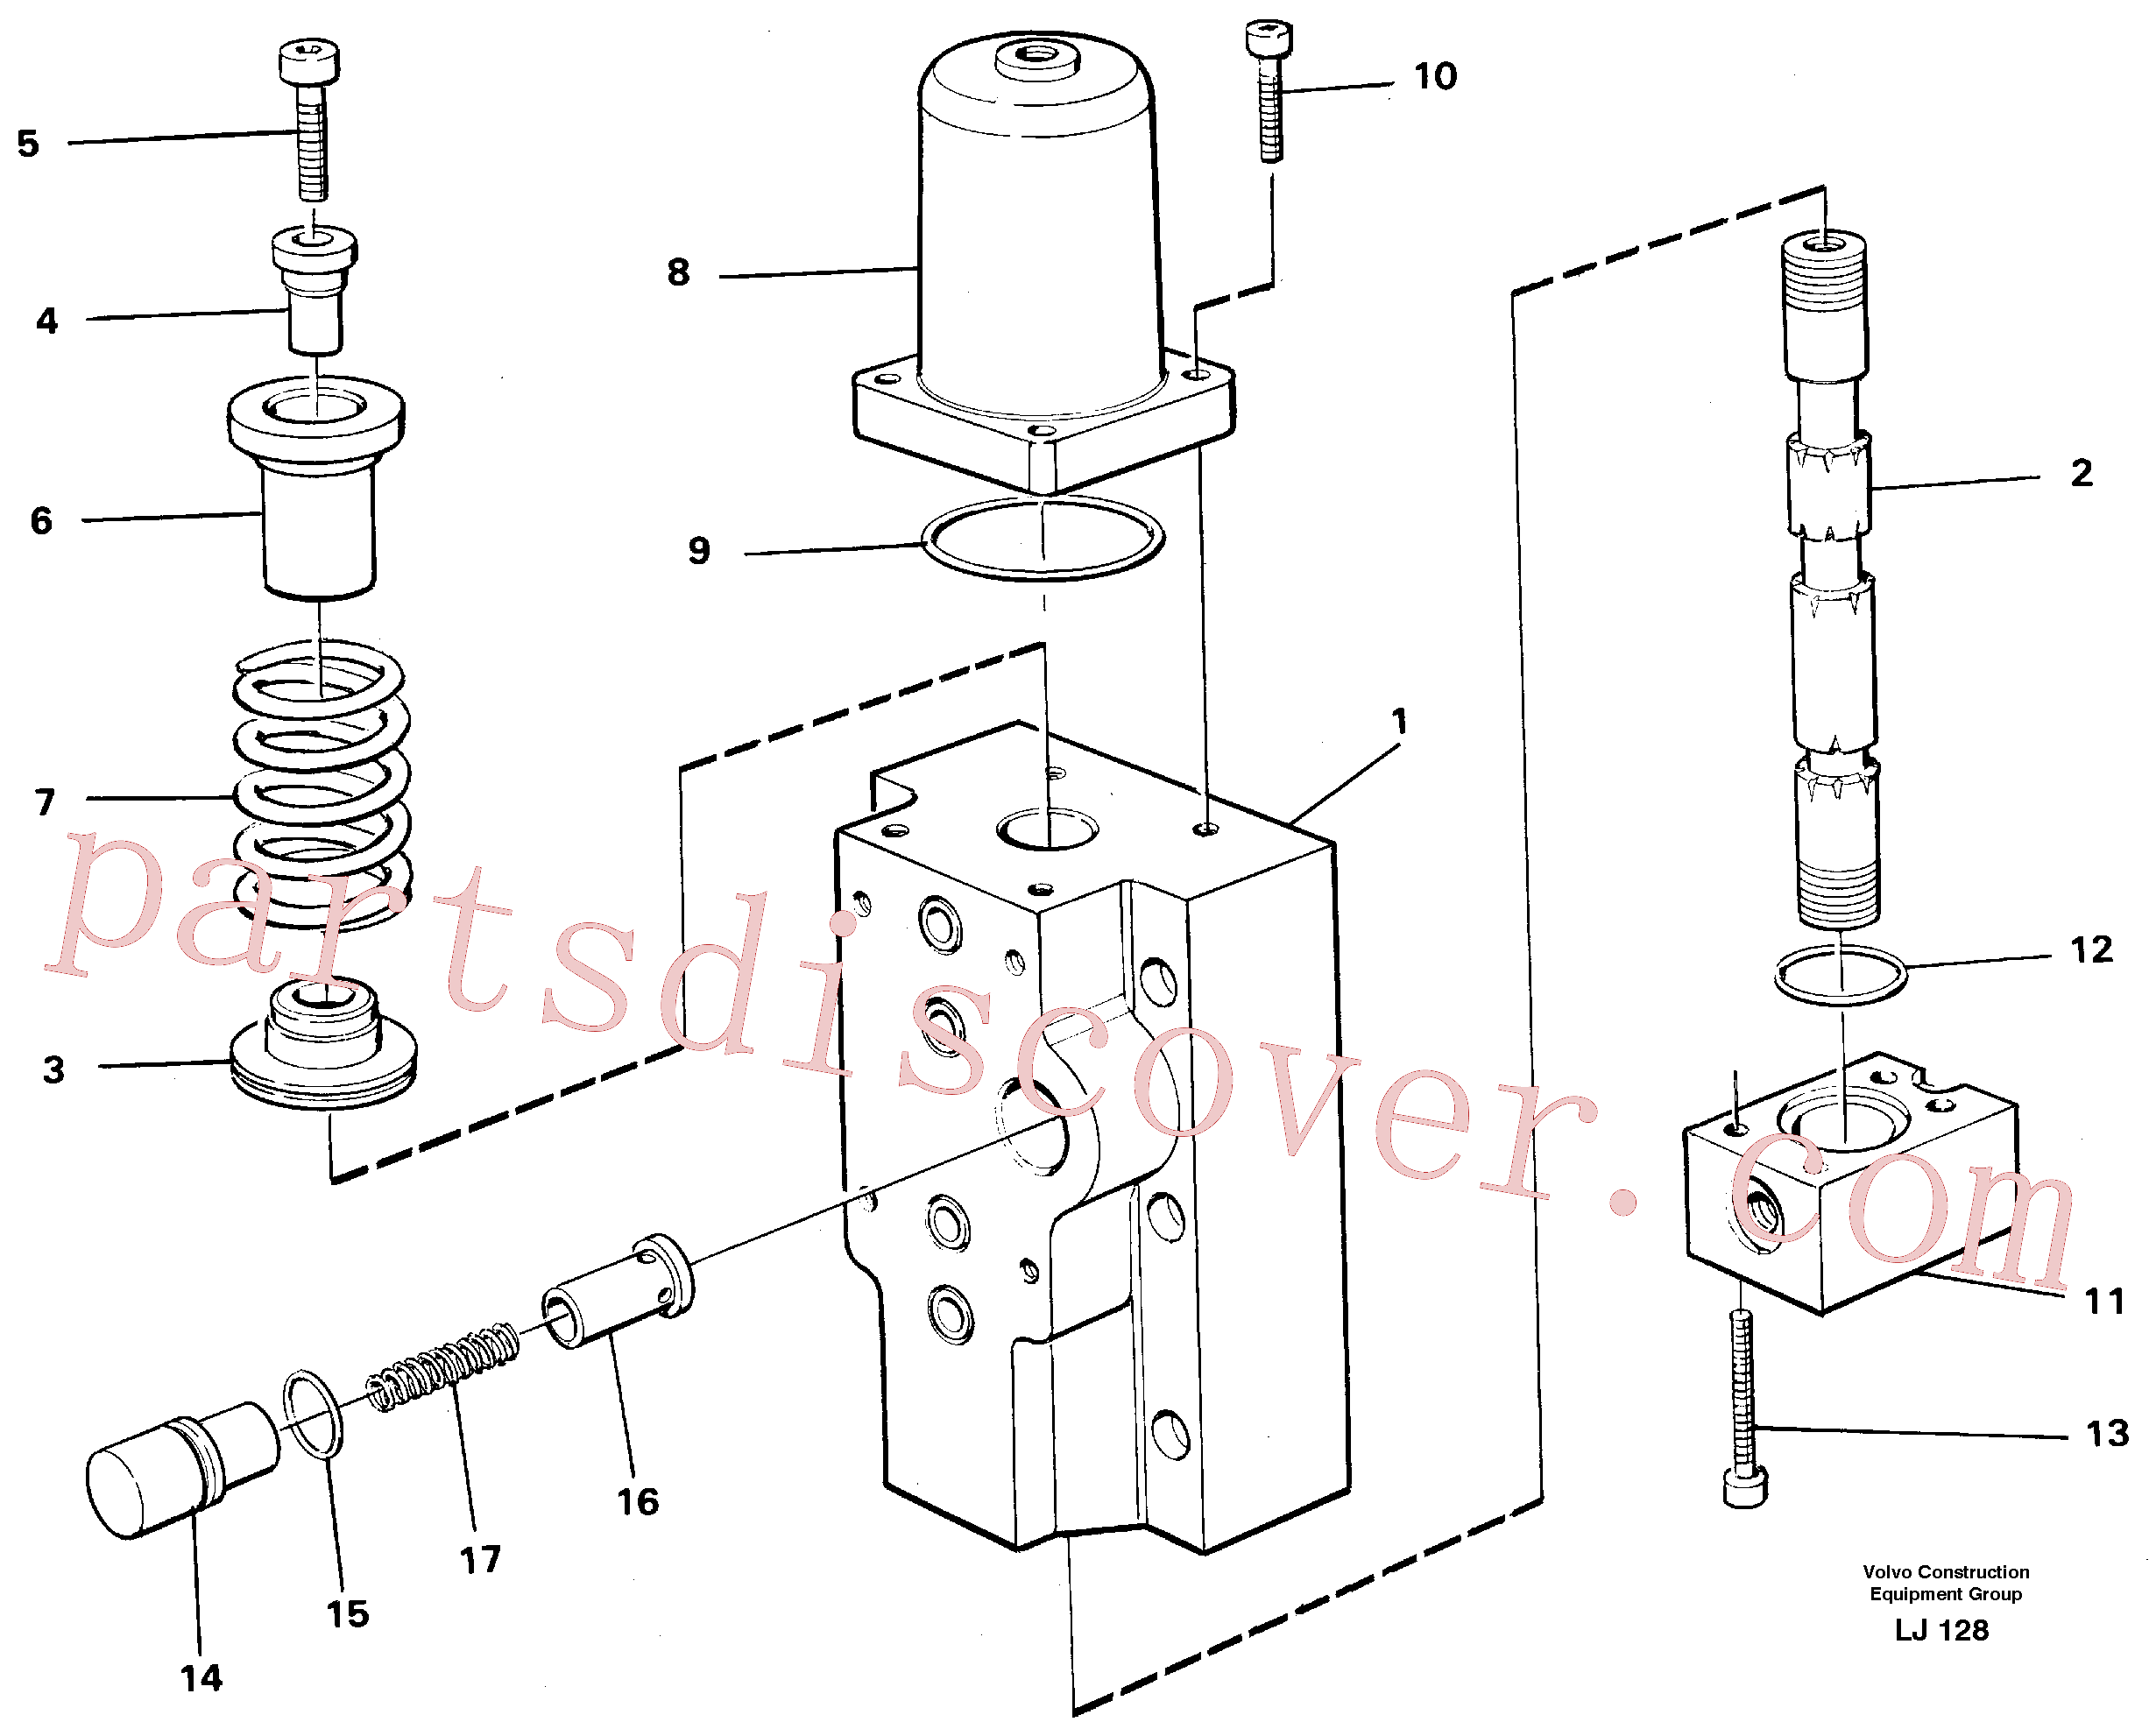 VOE14048551 for Volvo Four-way valves Primary, Four-way valve for hammer/shears(LJ128 assembly)